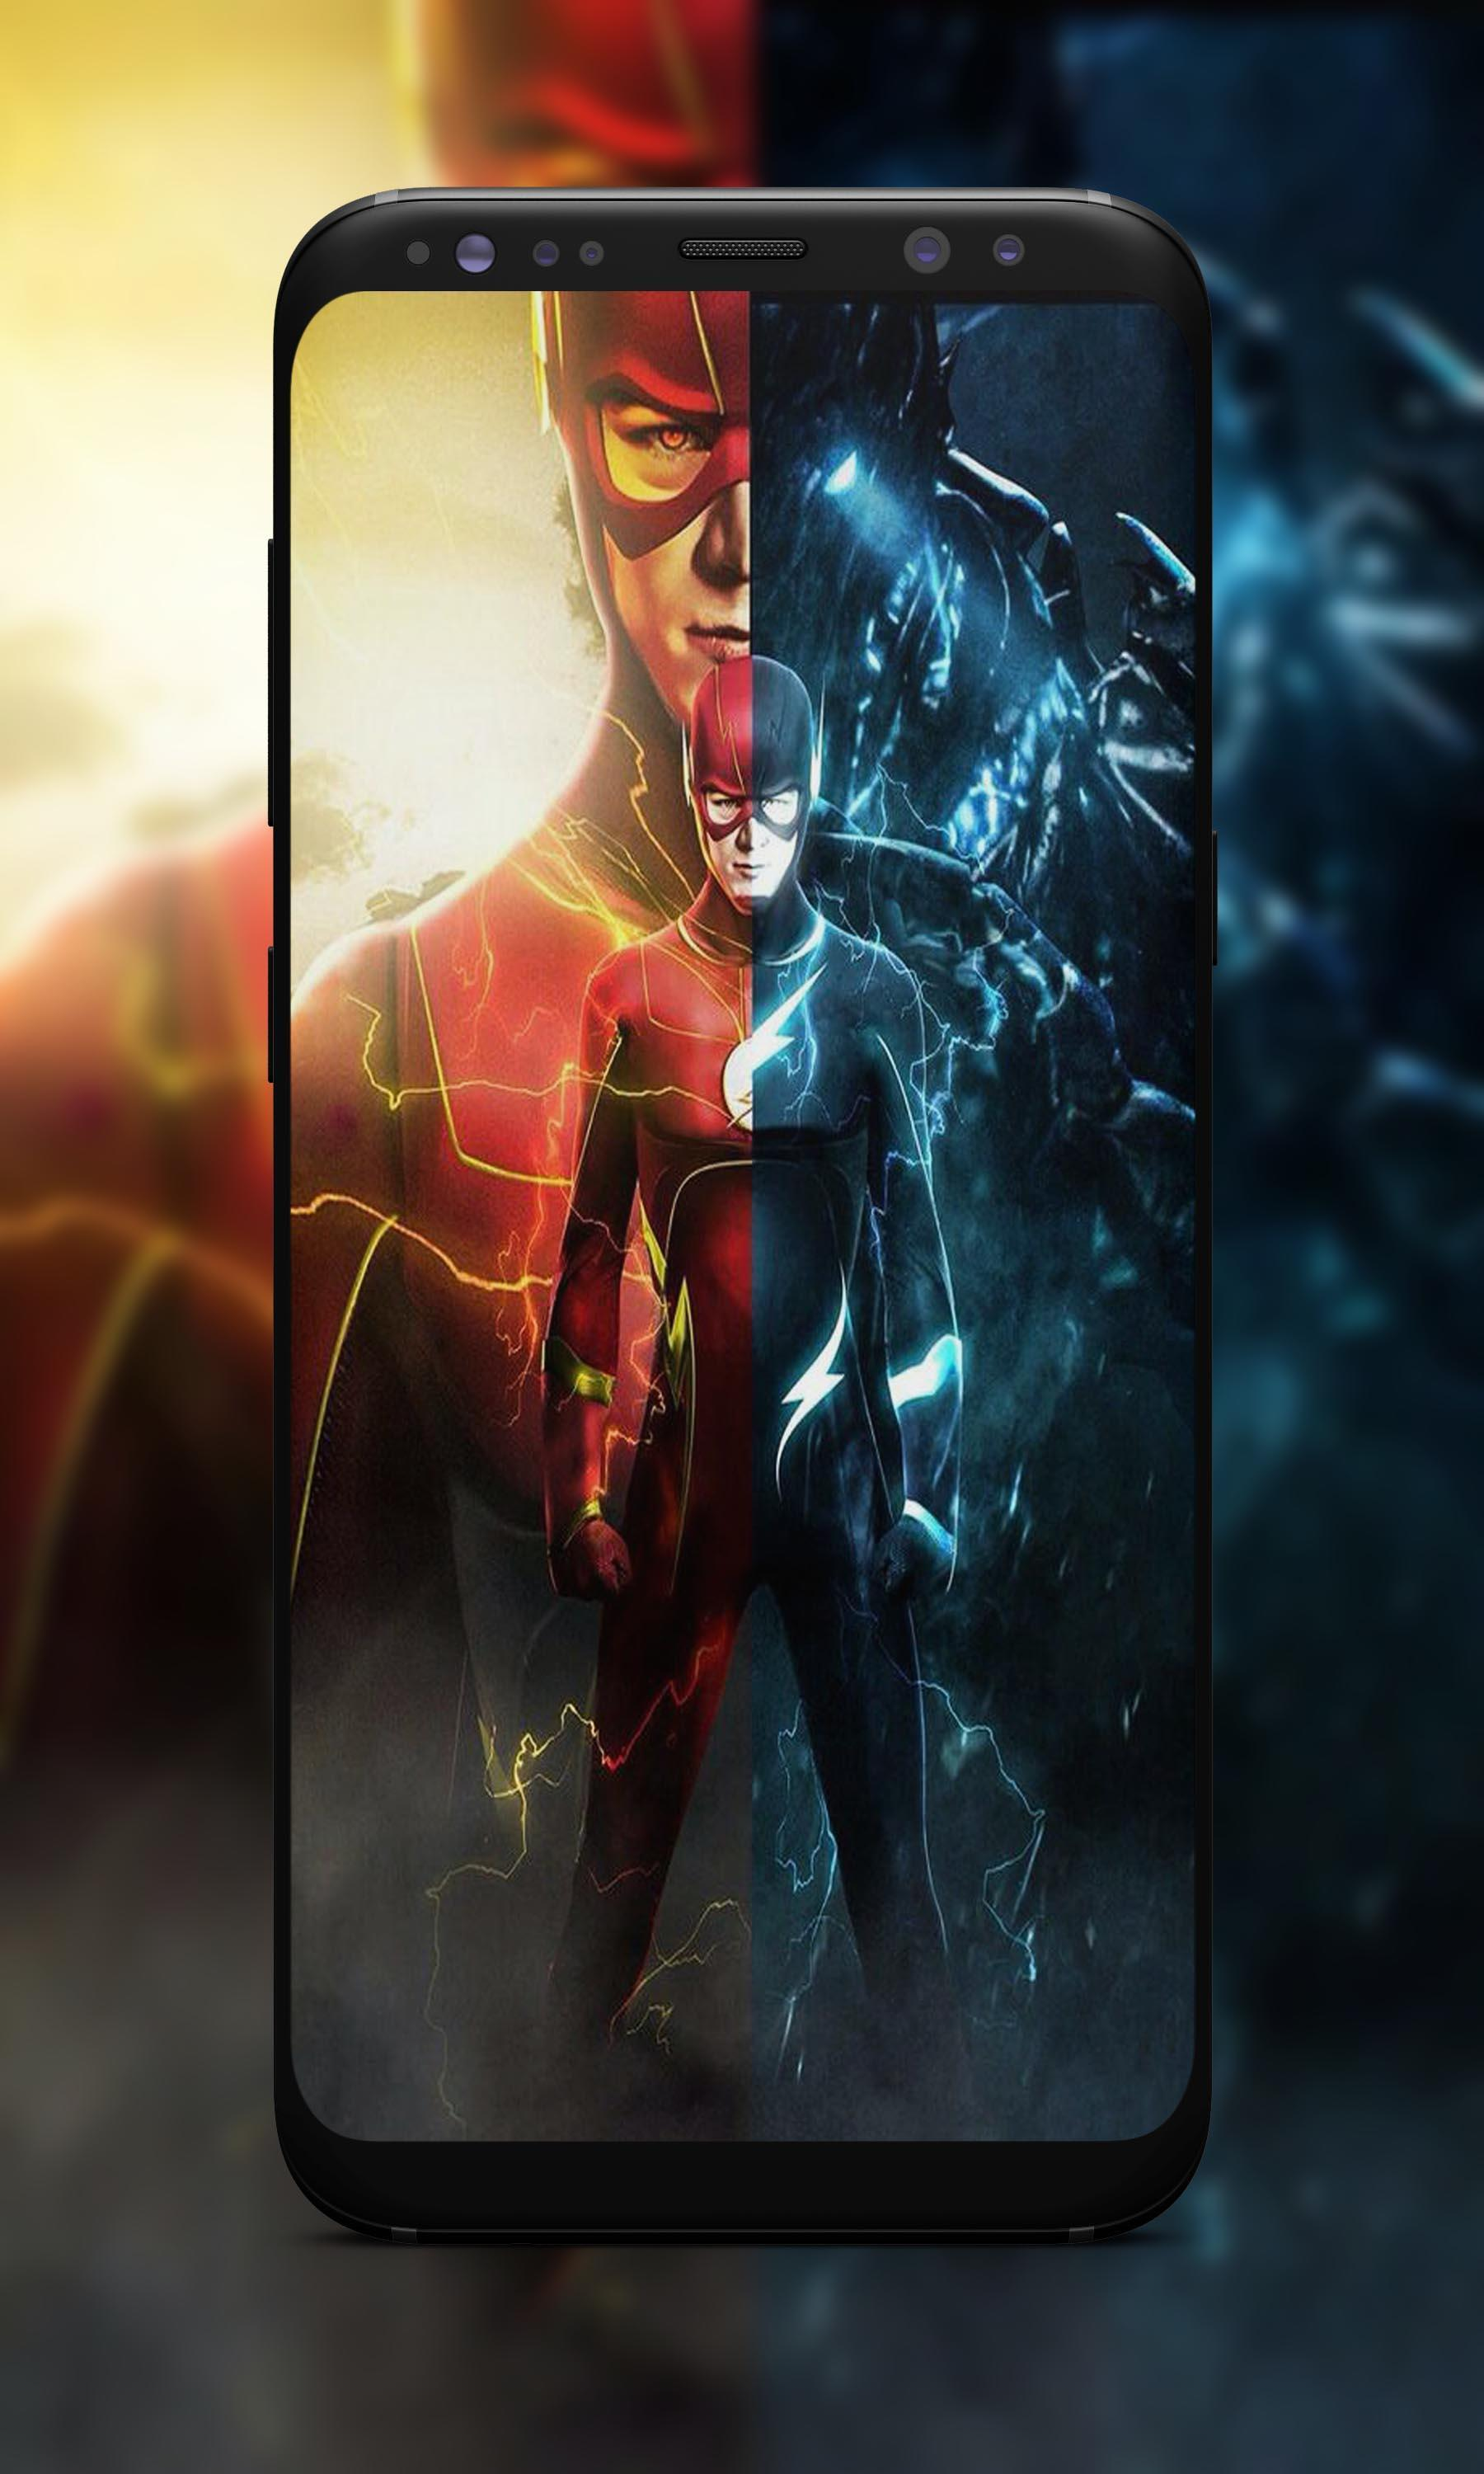 Flash Wallpaper Hd For Android Apk Download